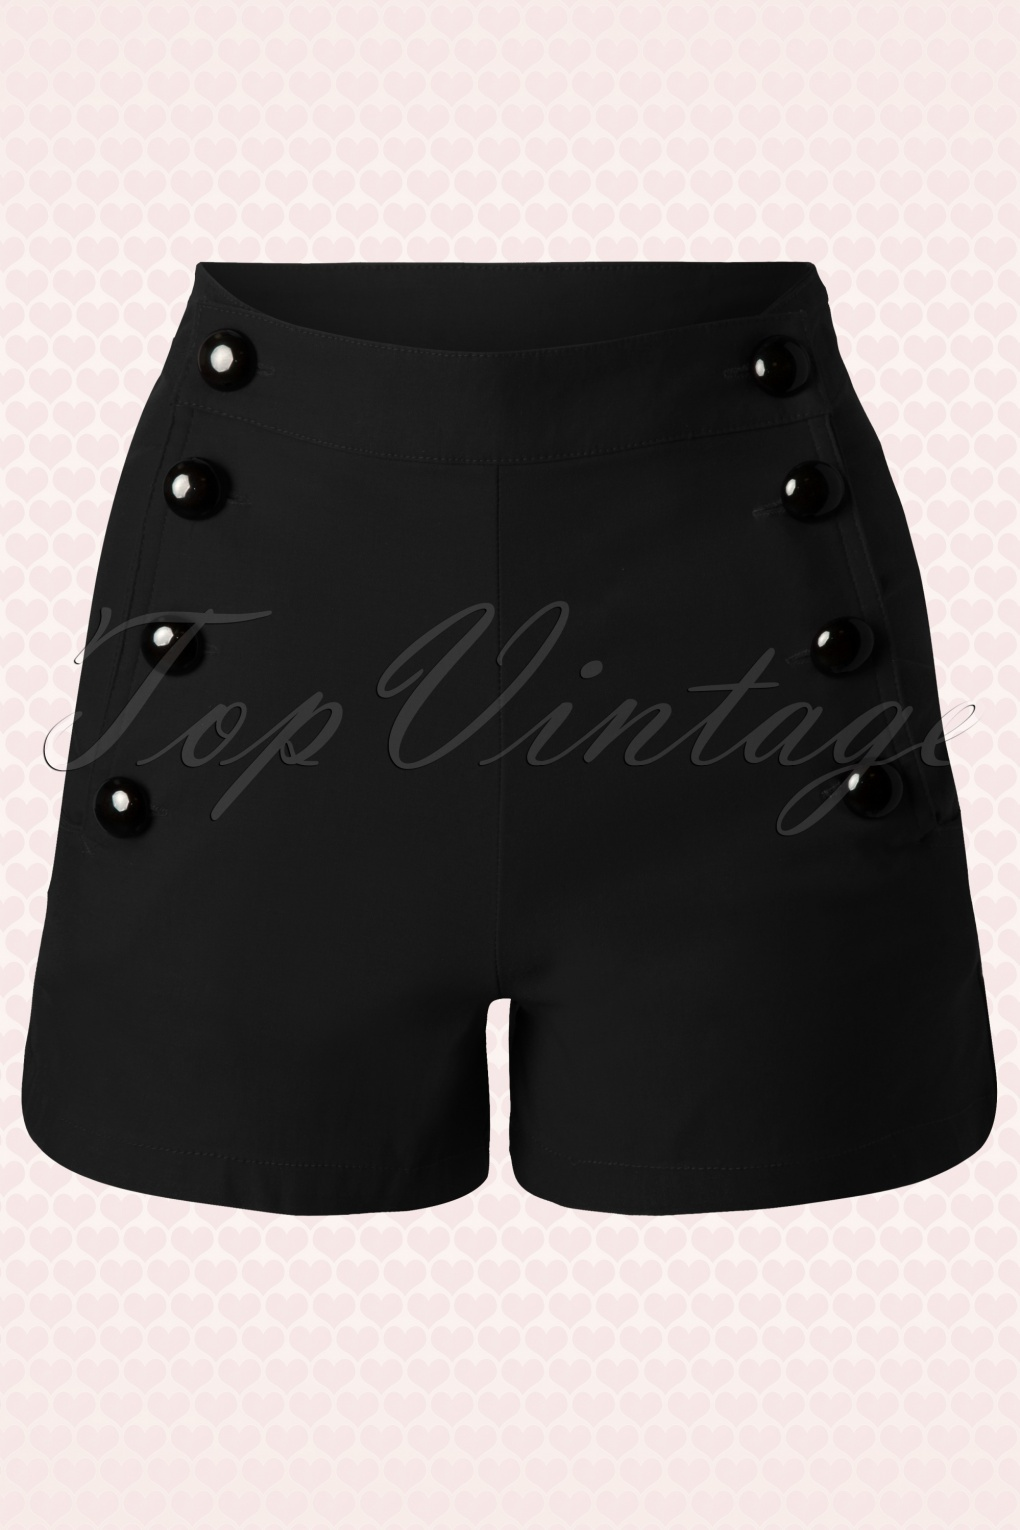 1950s Shorts History 50s Miss Classy Black Shorts £30.02 AT vintagedancer.com